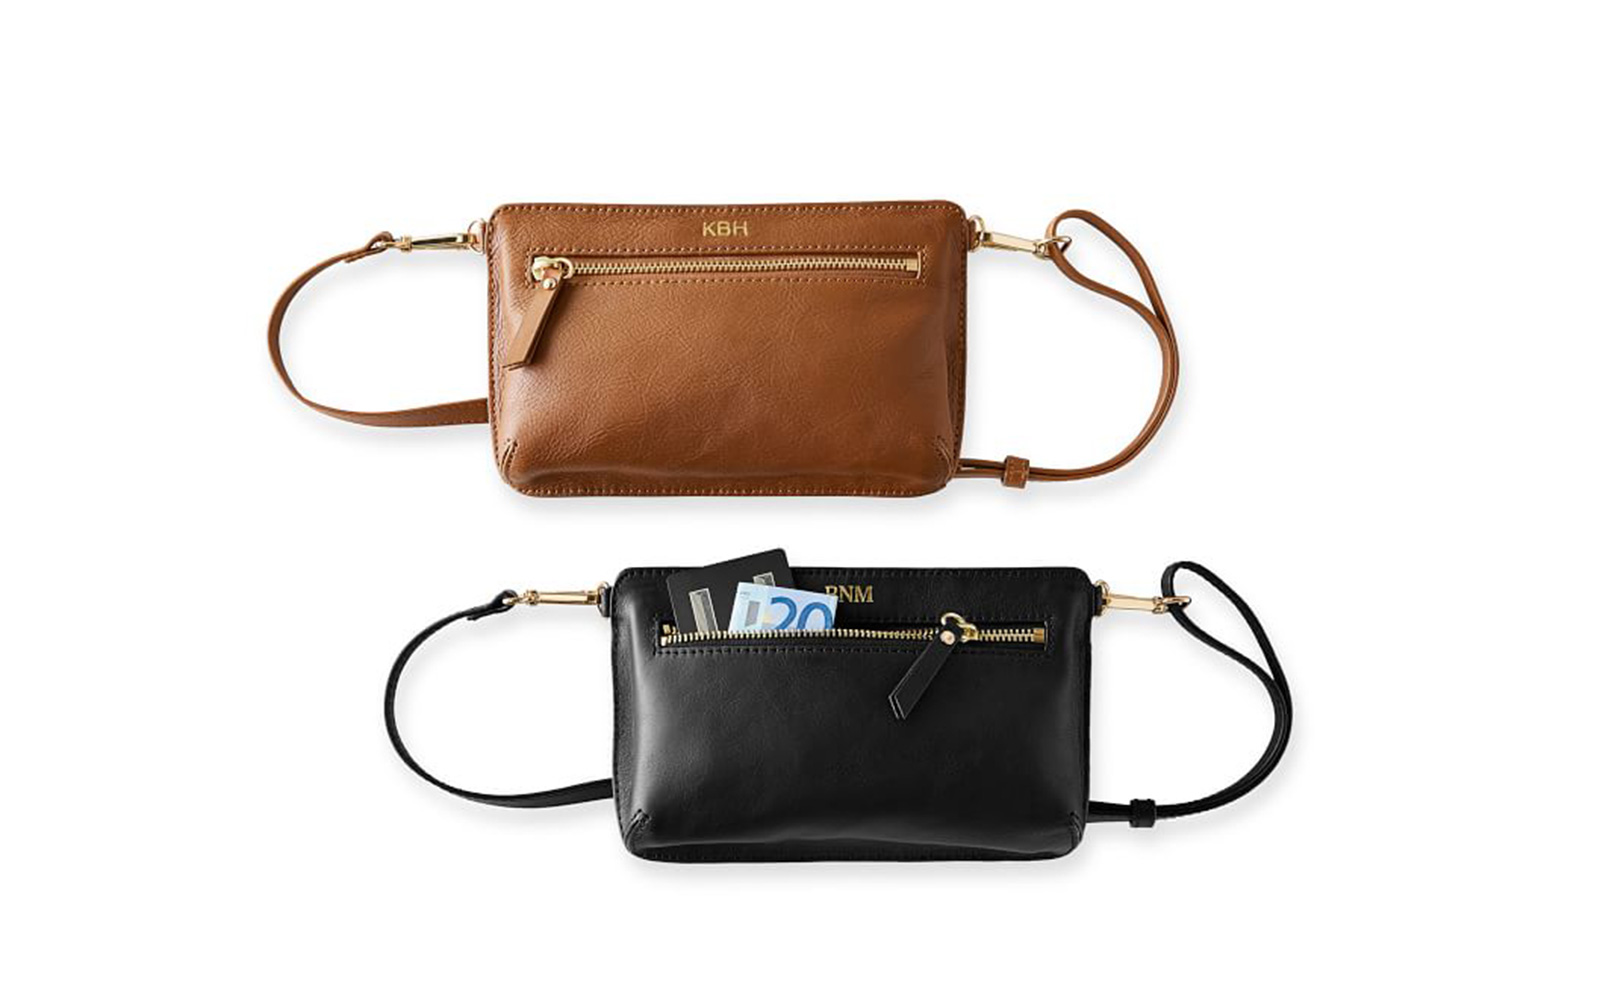 69ea00ccd6 Cute Fanny Packs and Belt Bags for Stylish Travelers